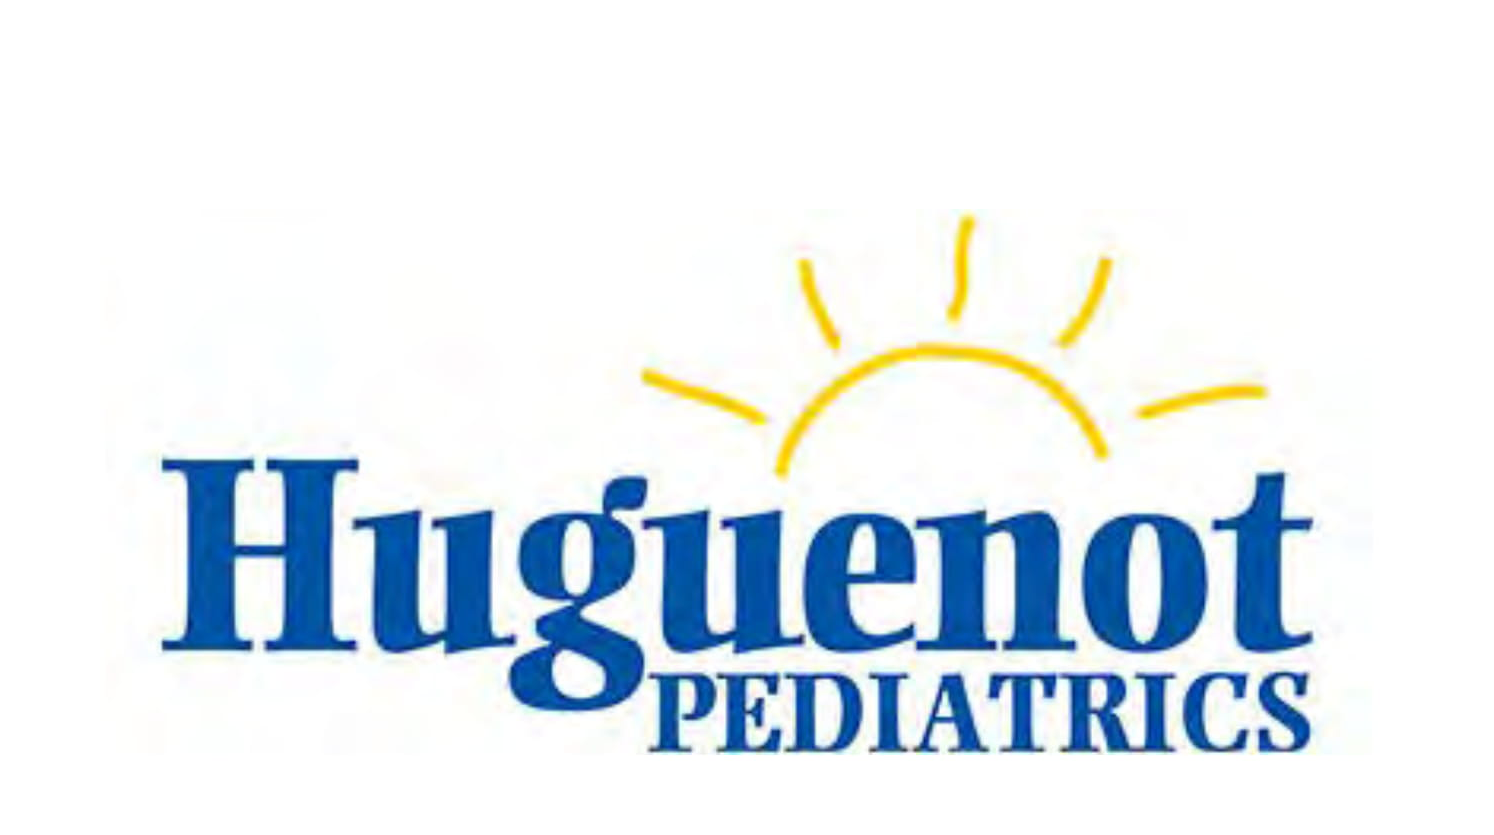 Huguenot Pediatrics